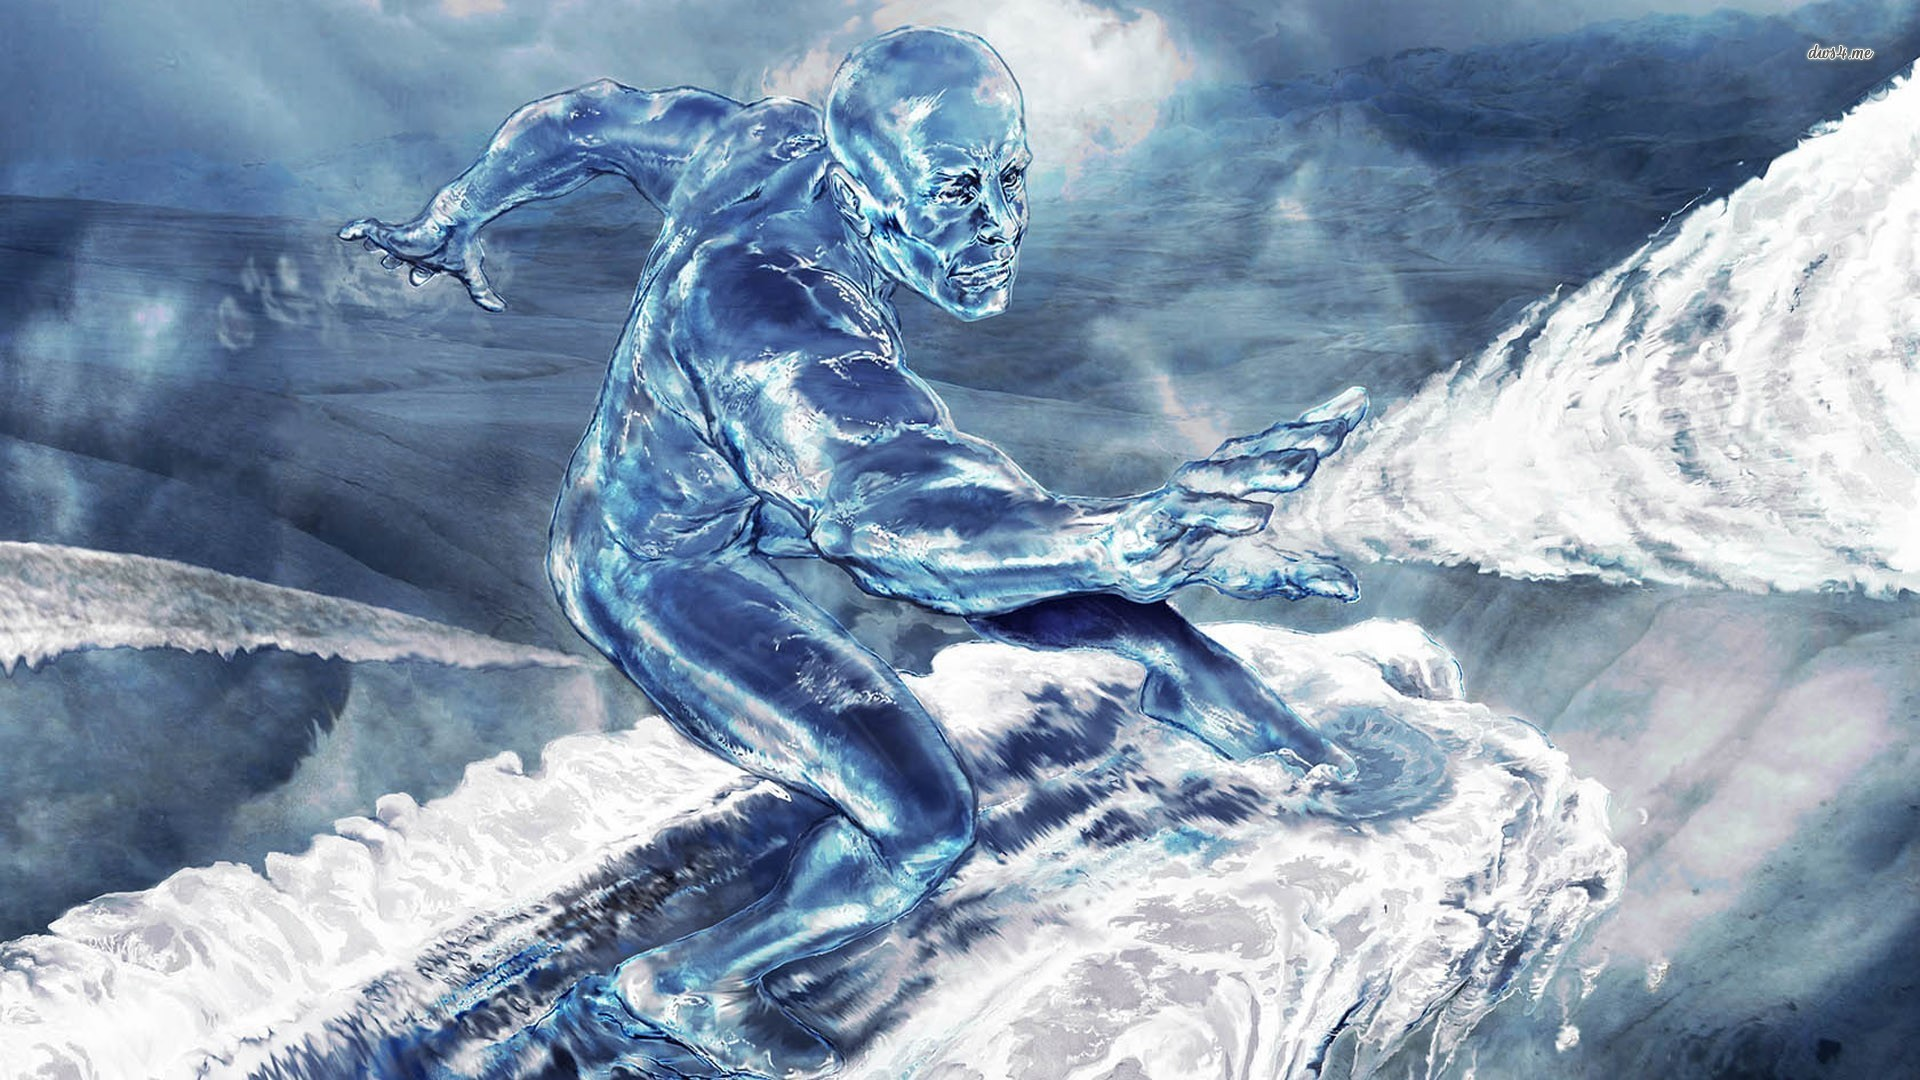 65 Iceman Wallpapers on WallpaperPlay 1920x1080